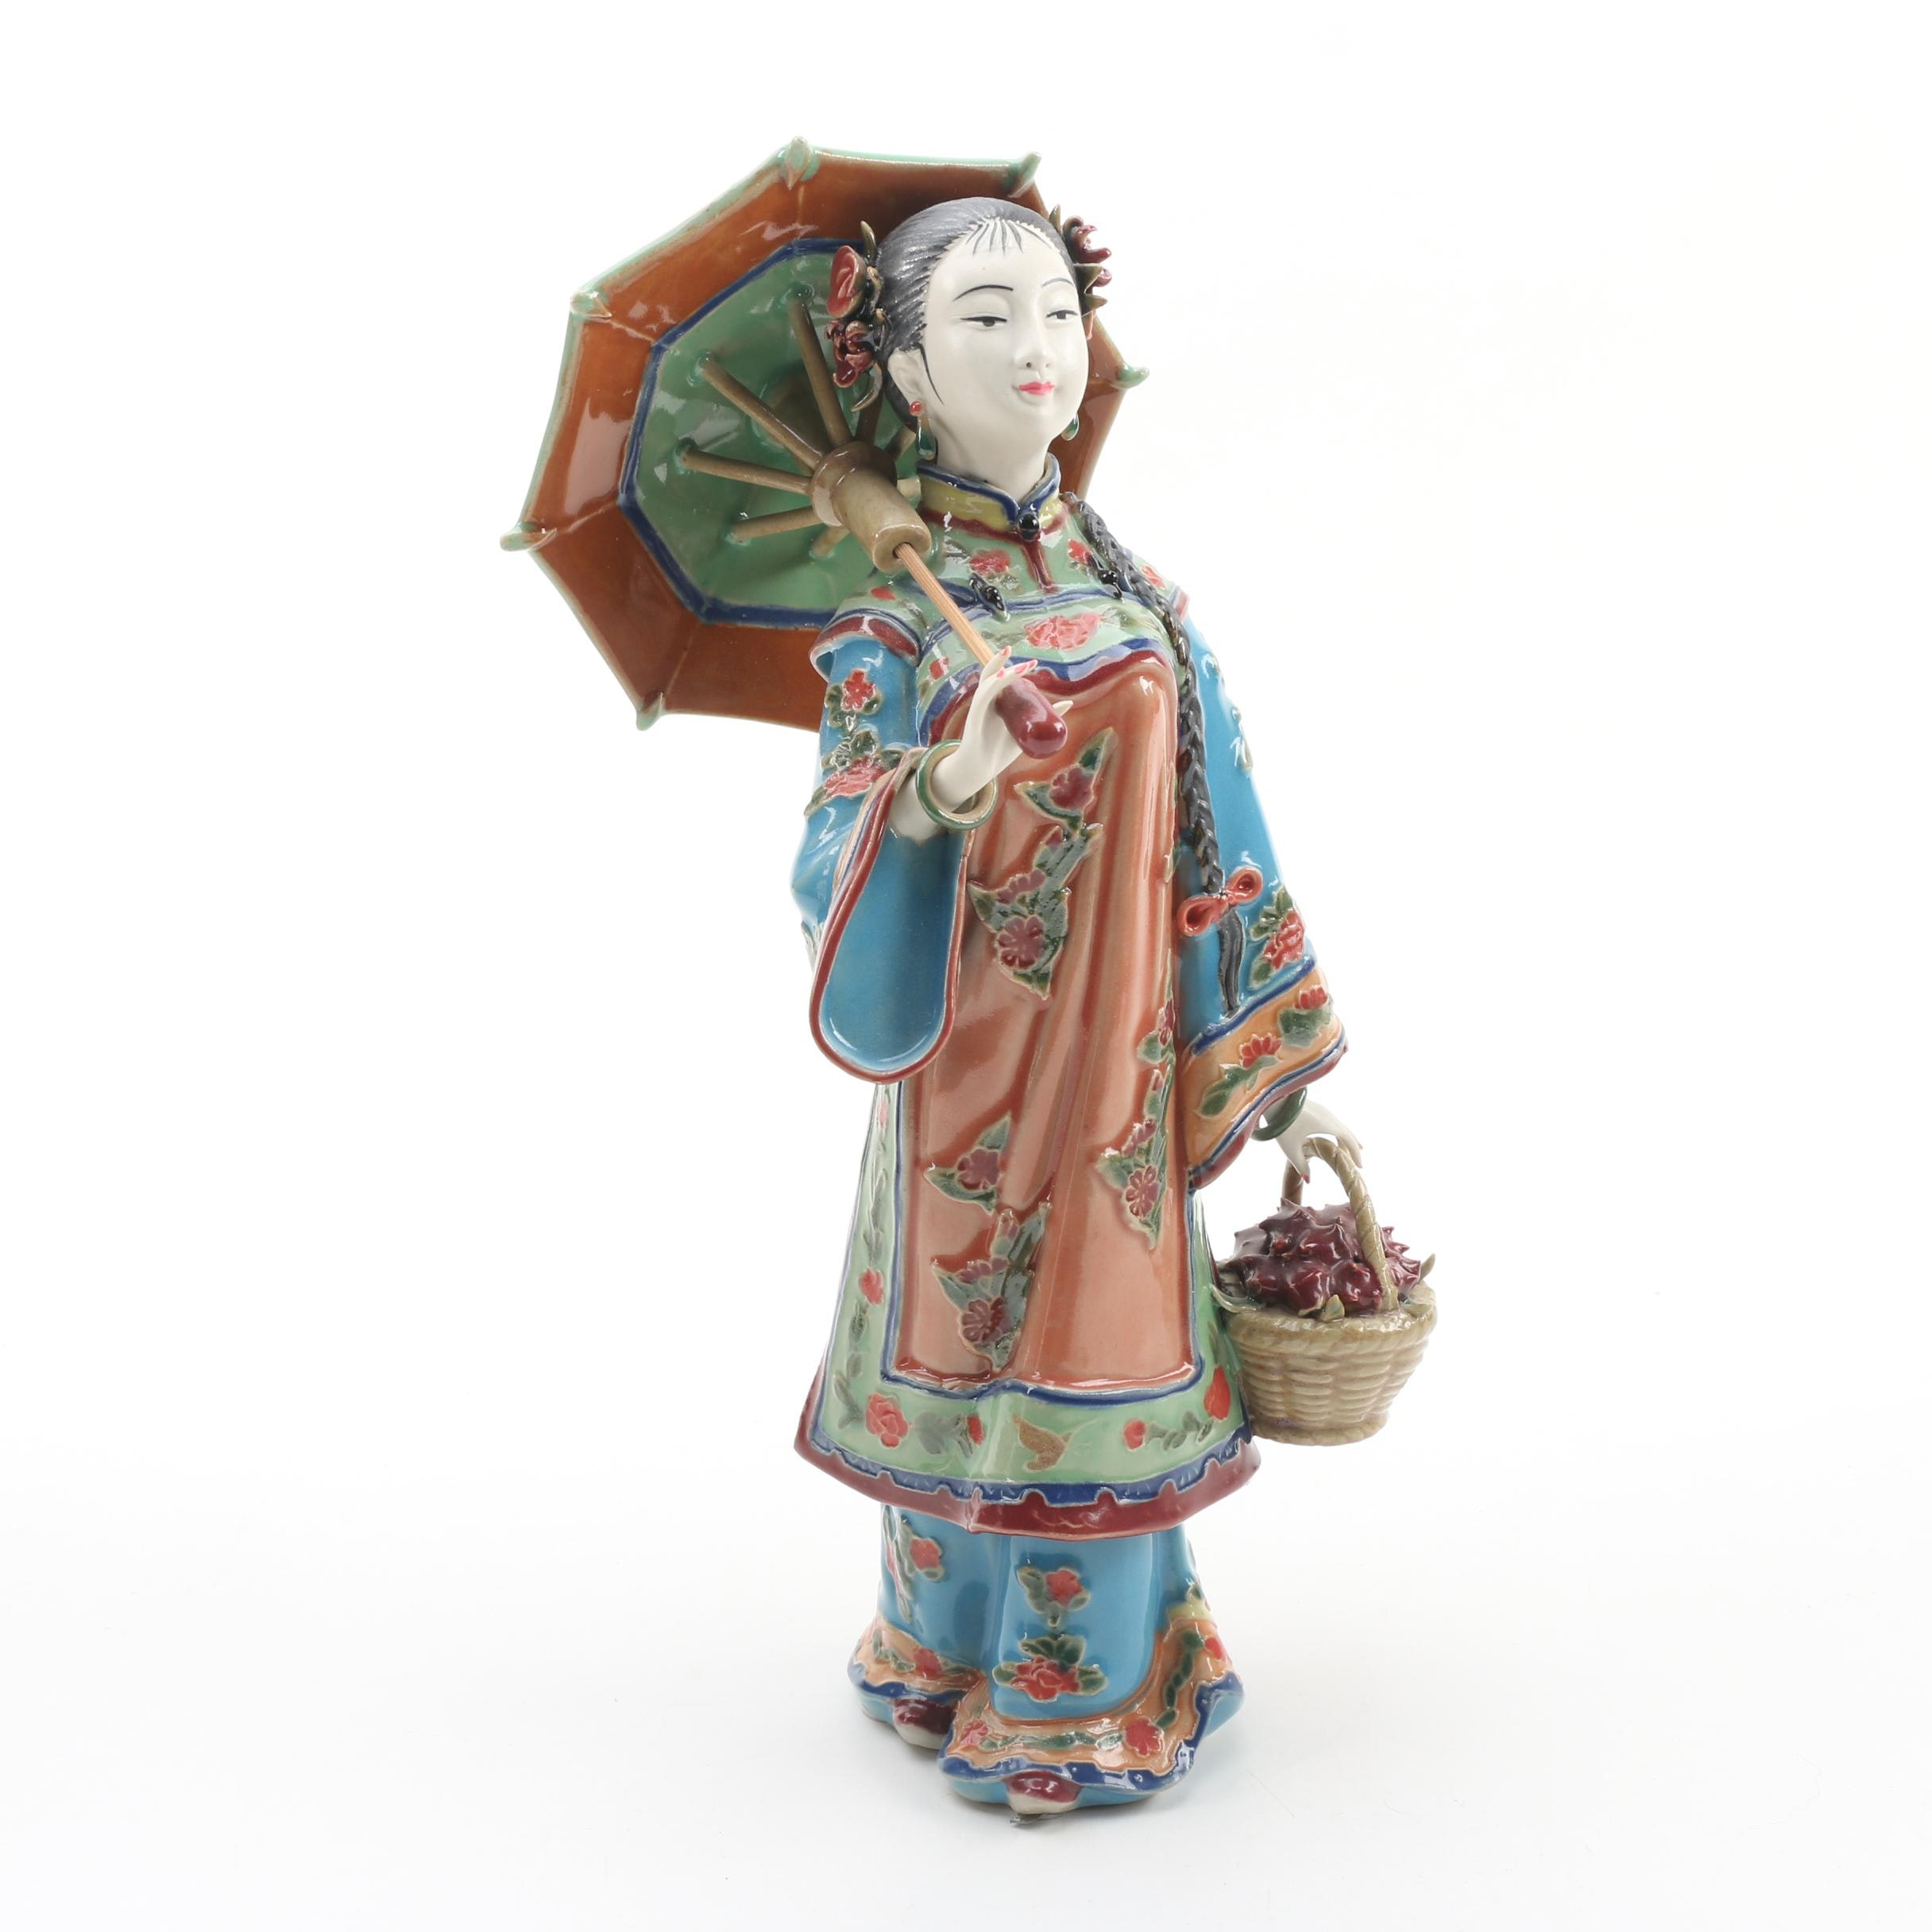 Chinese Shiwan Ware Lady with Parasol Figurine by Lin Wei Dong